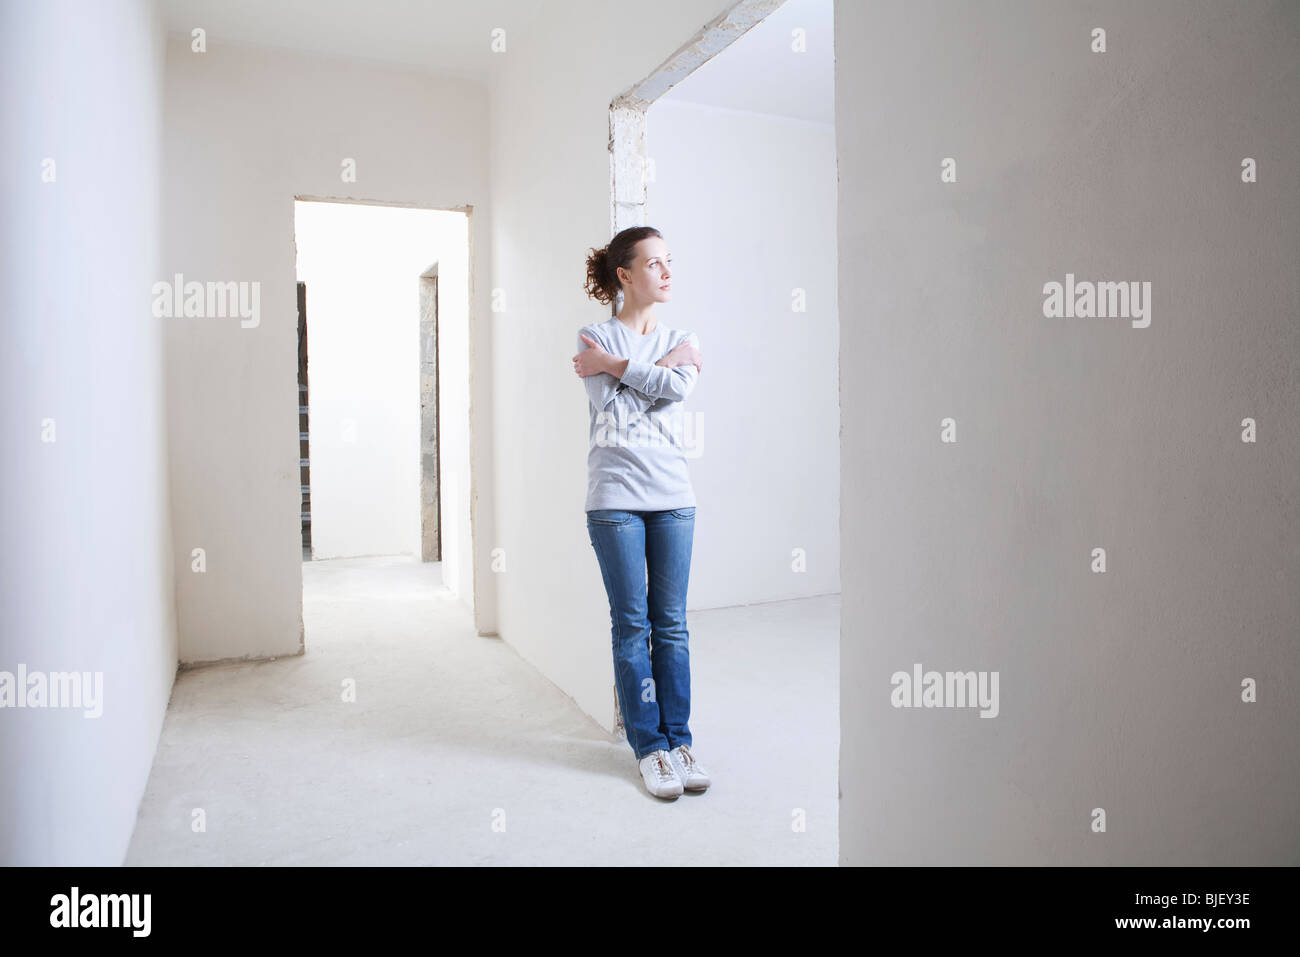 Woman leans on archway of new apartment - Stock Image